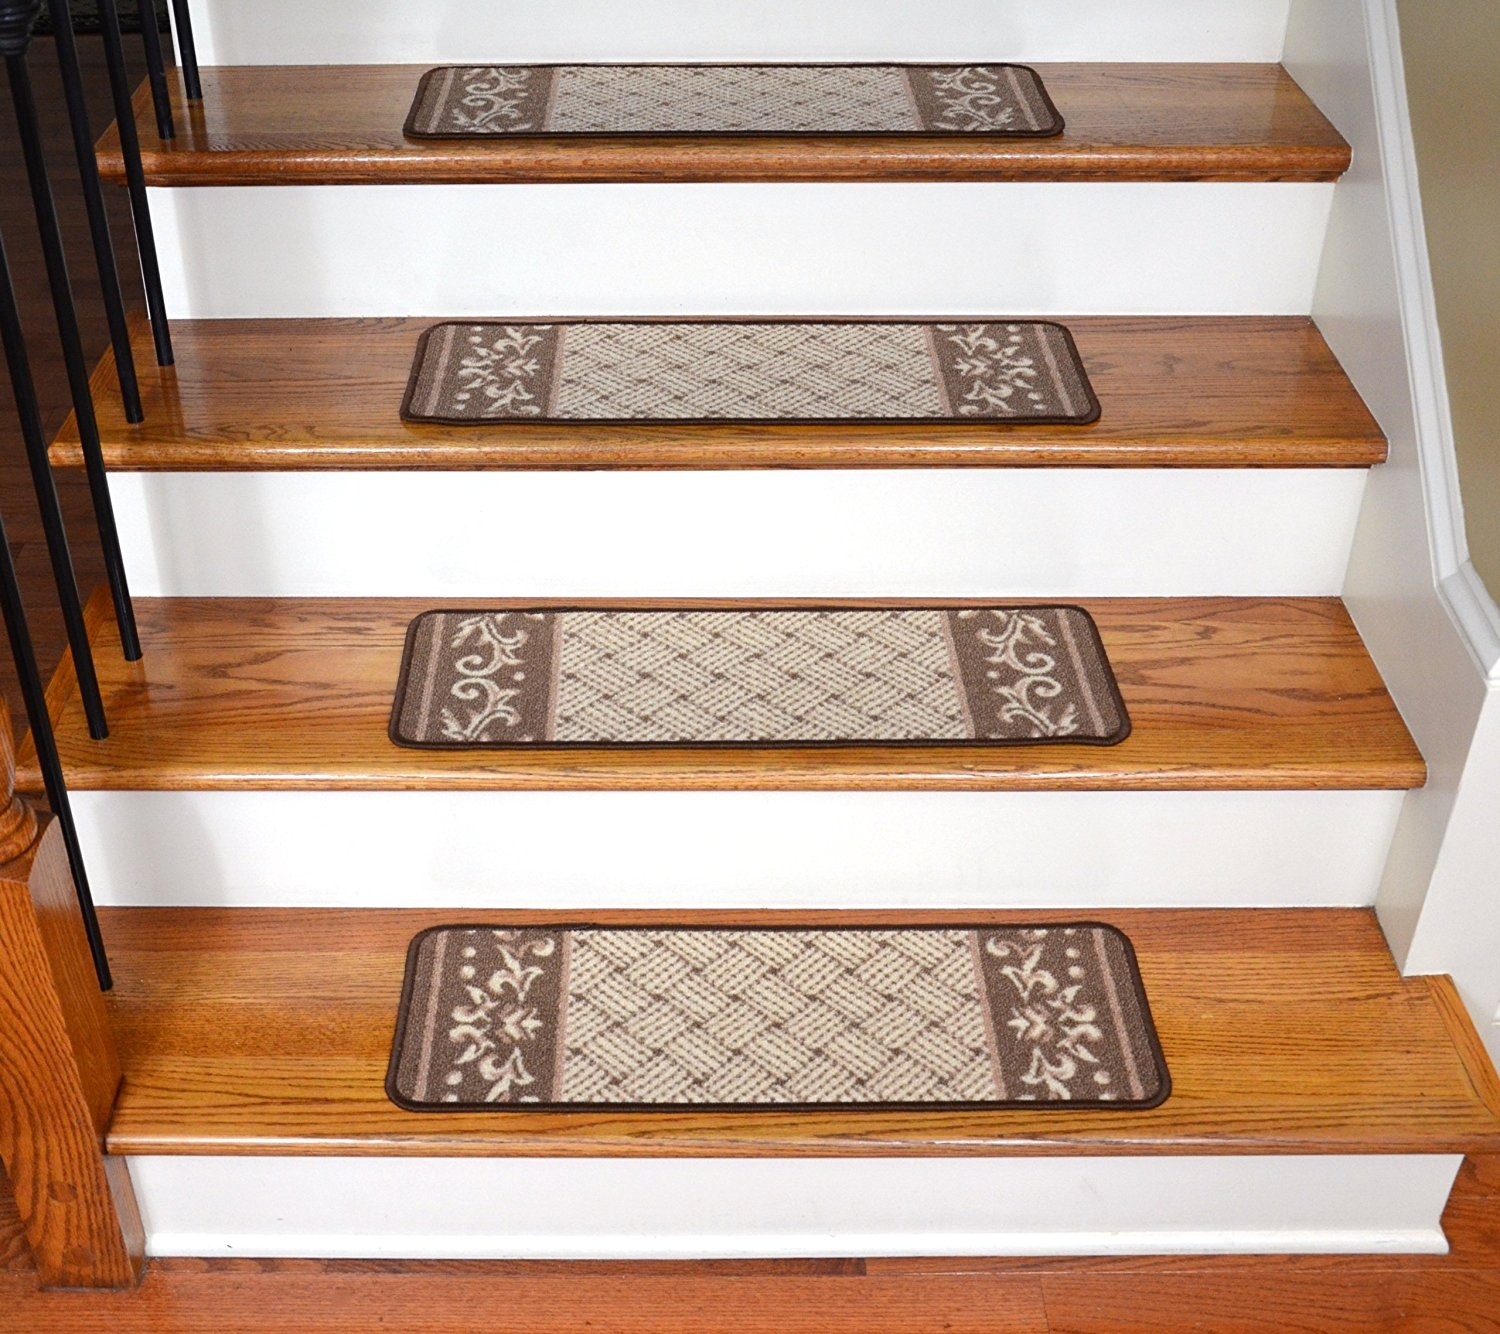 Amazon Carpet Stair Treads Caramel Scroll Border Regarding Stair Treads And Matching Rugs (Image 2 of 15)